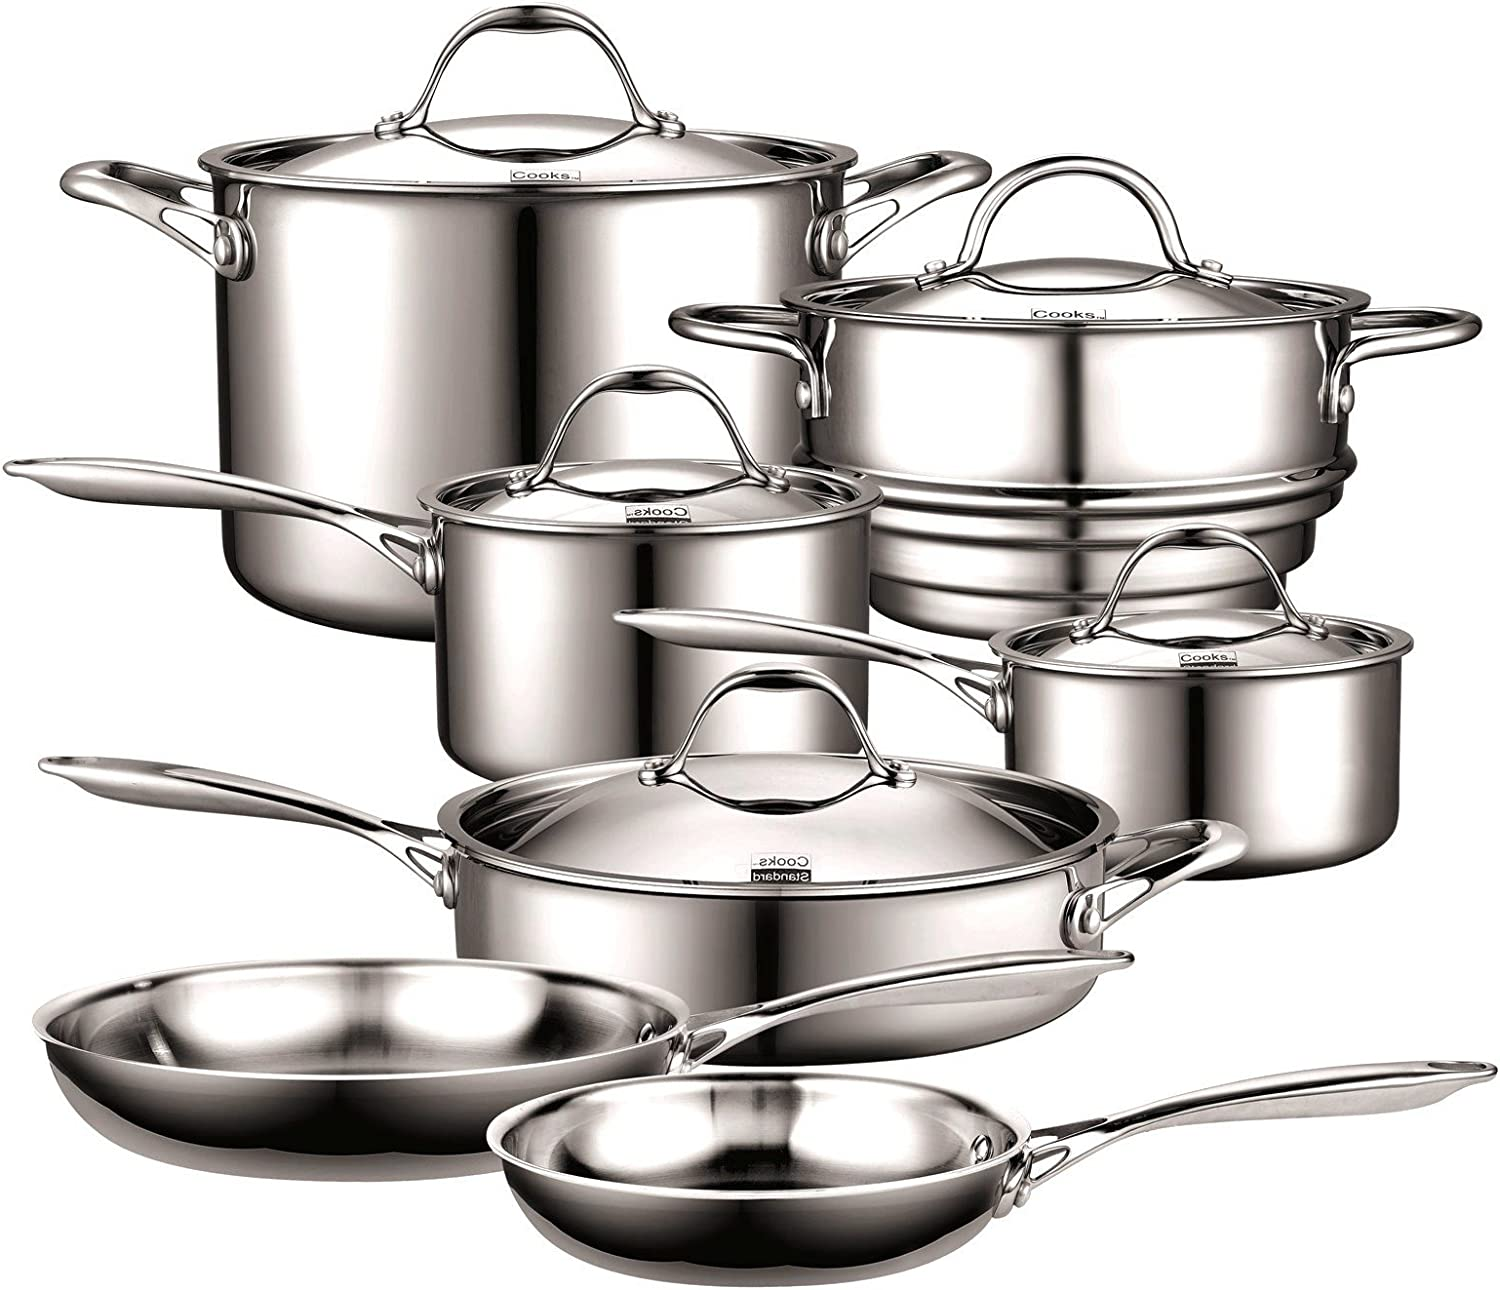 Cooks Standard NC-00232 Stainless Steel 12-Piece Multi-Ply Clad Cookware Set